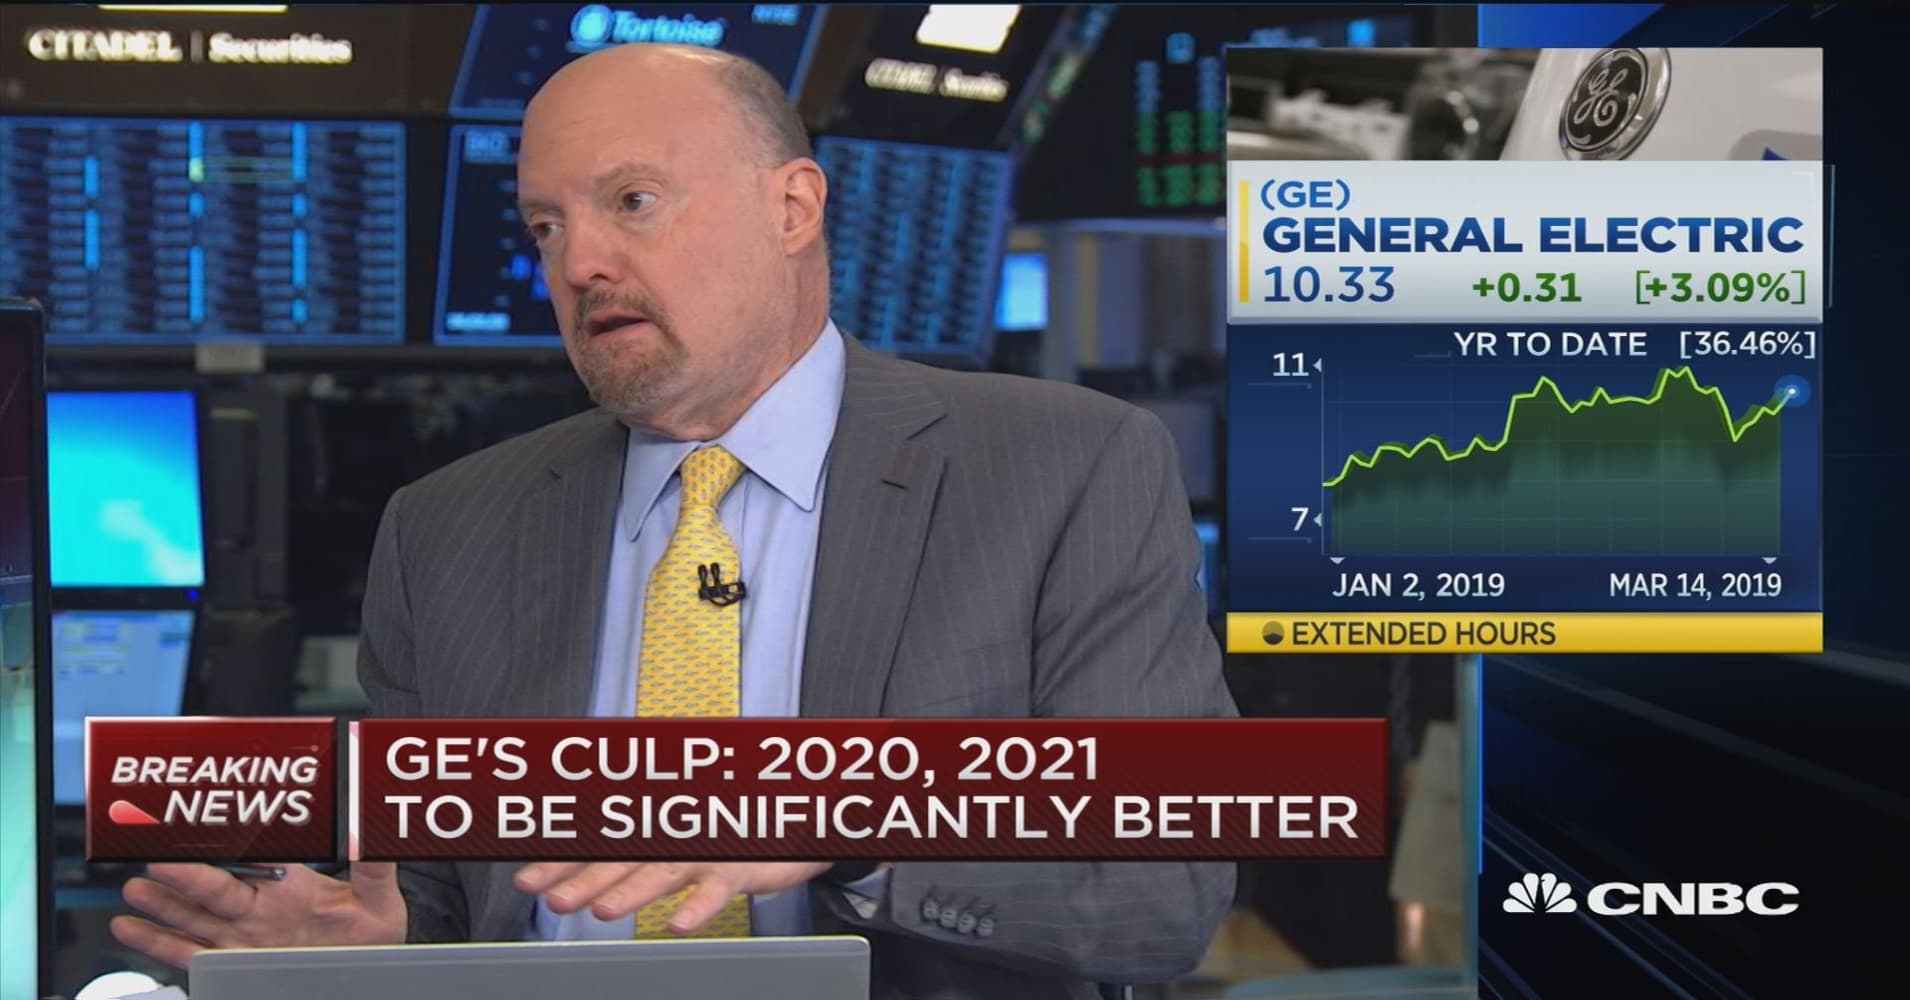 Cramer on GE 2019 Outlook: 'This is the reset we've been waiting for'